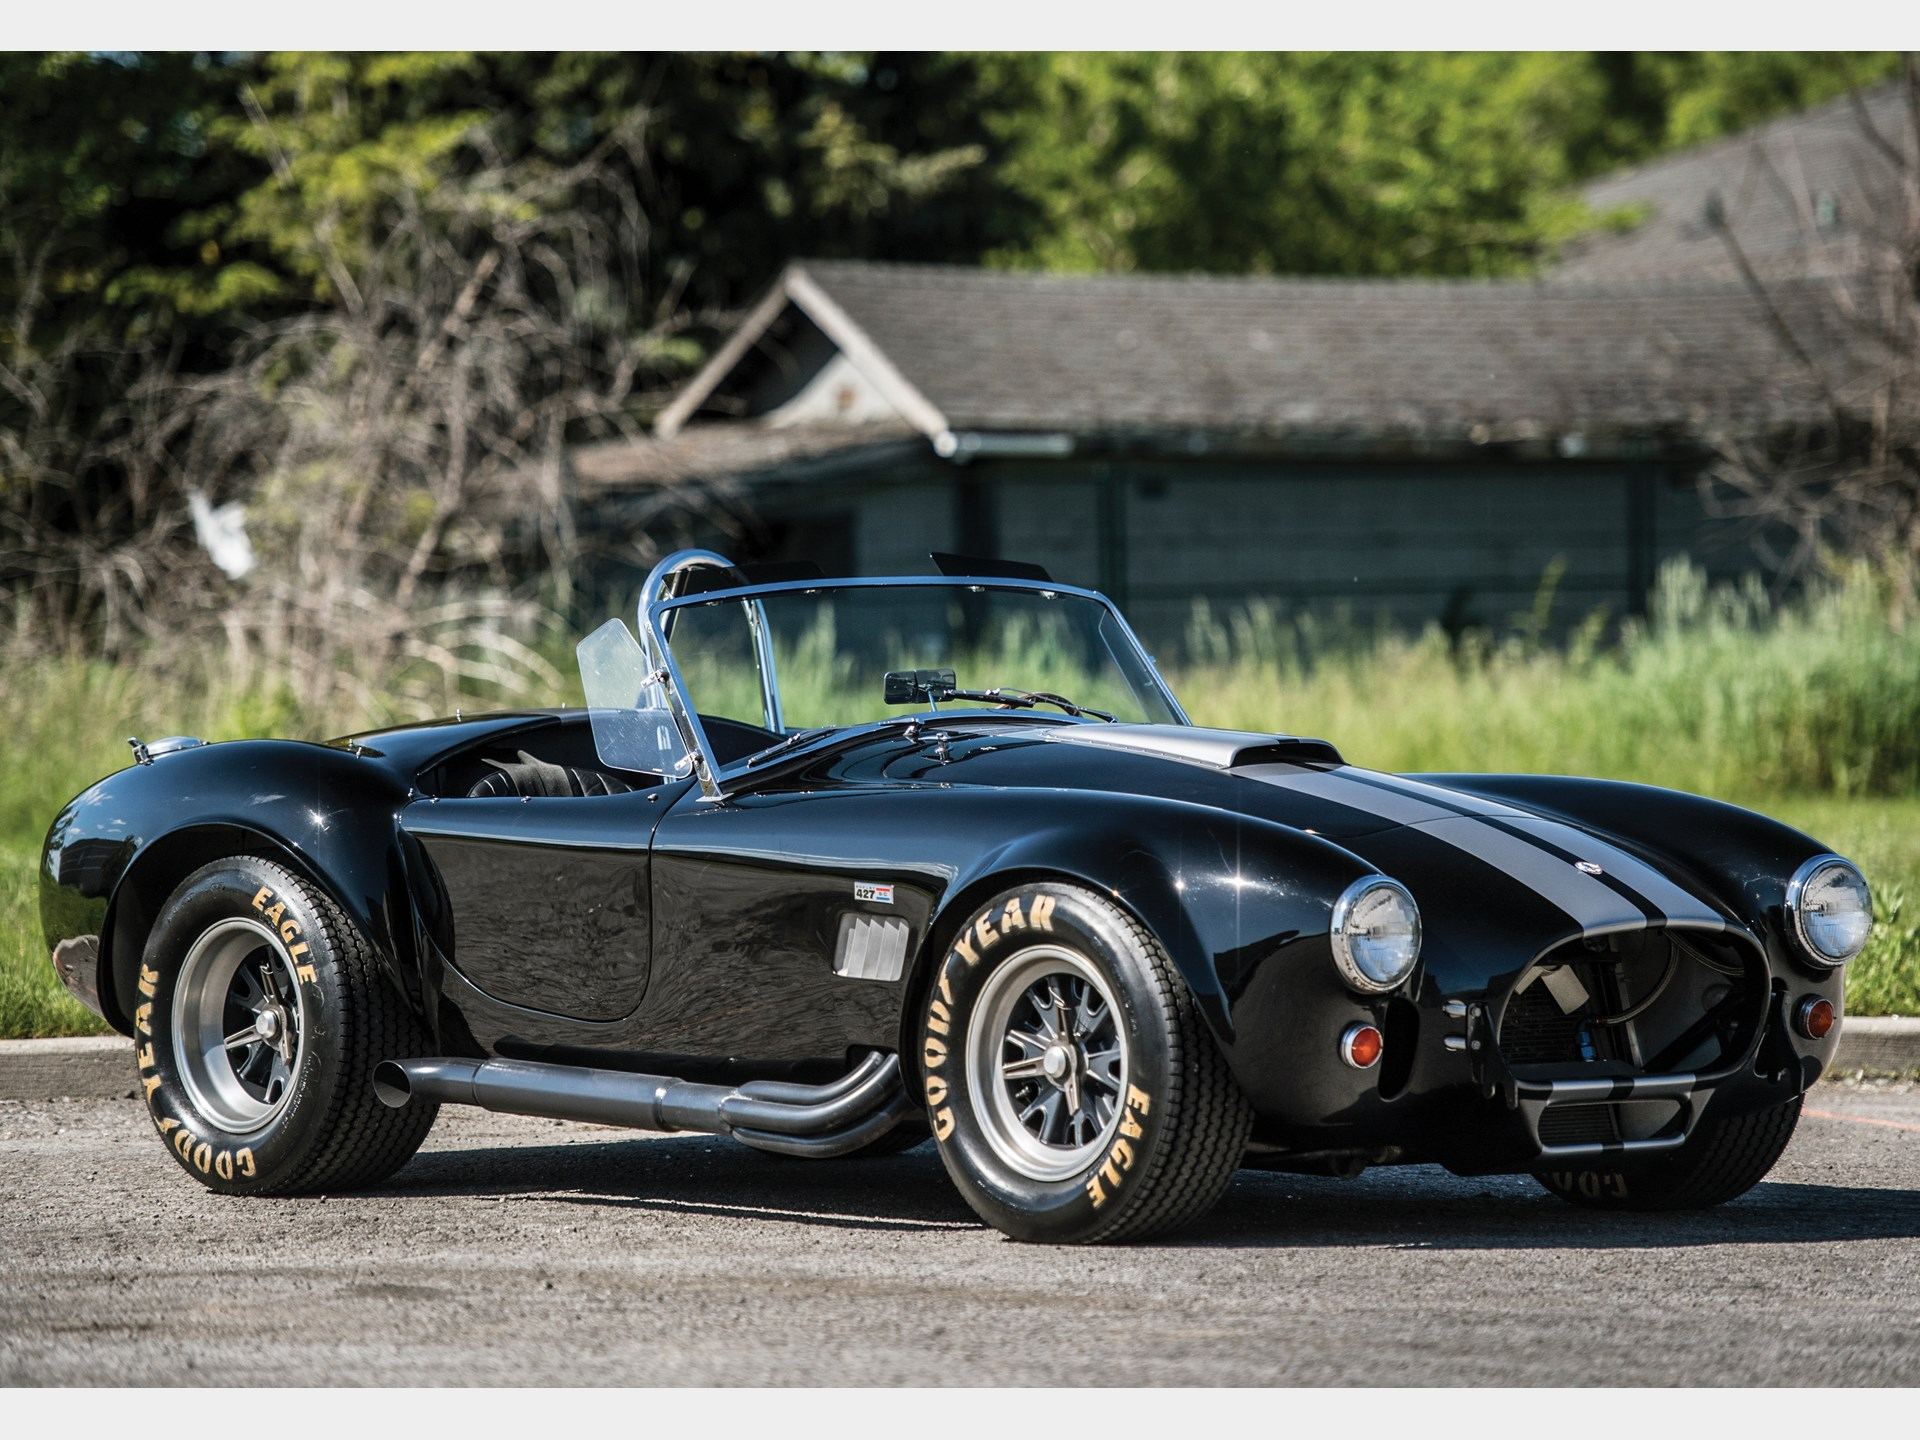 Image result for 1966 Shelby cobra s/c